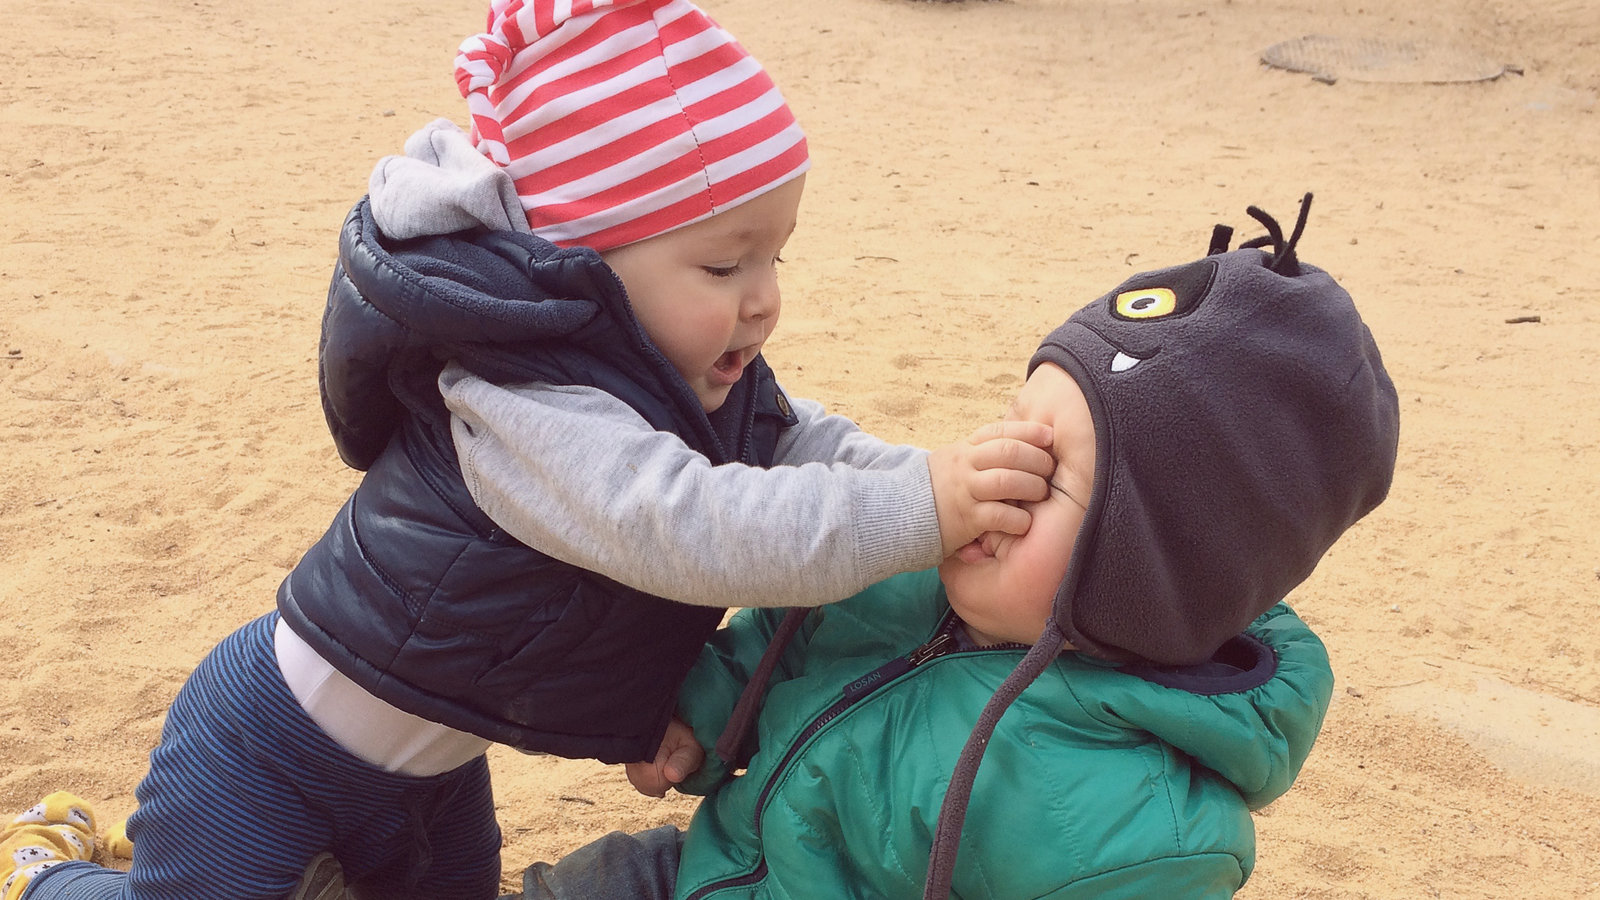 Dealing With Aggression In Children